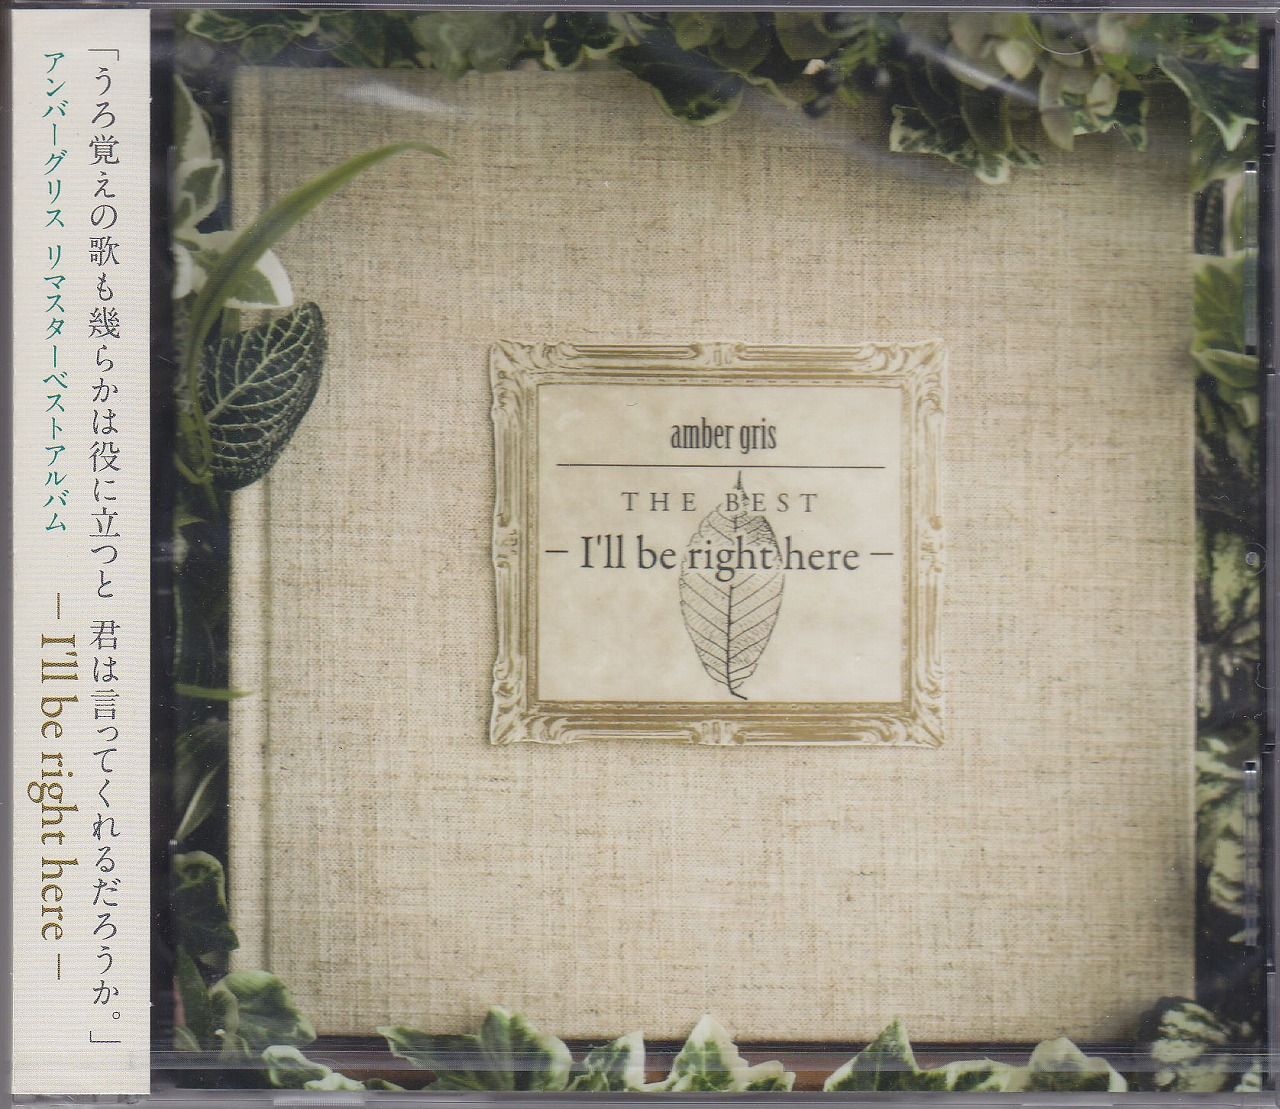 アンバーグリス の CD amber gris THE BEST - I'll be right here -